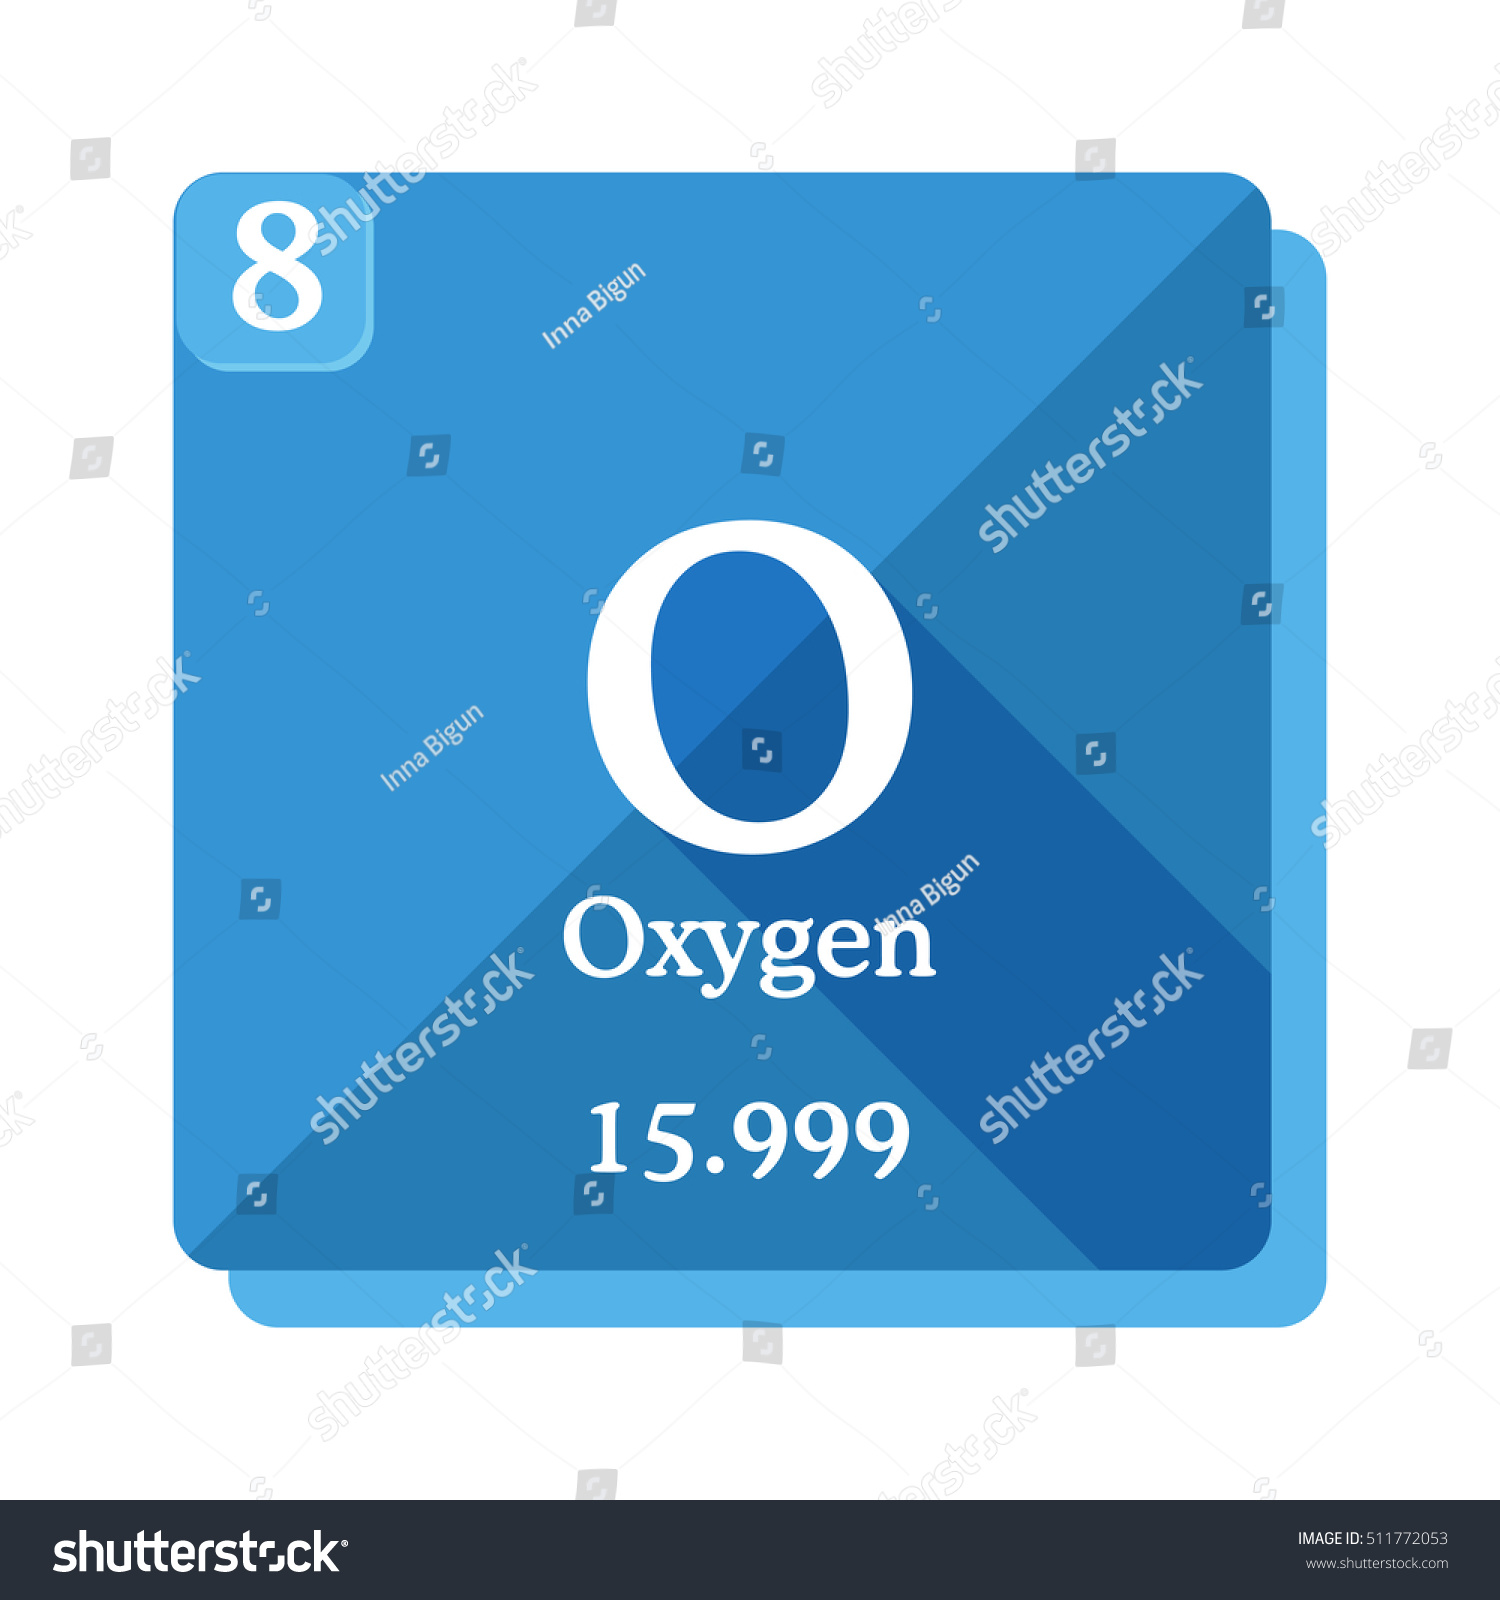 Periodic table oxygen facts image collections periodic table images oxygen facts periodic table image collections periodic table images oxygen facts periodic table gallery periodic table gamestrikefo Images